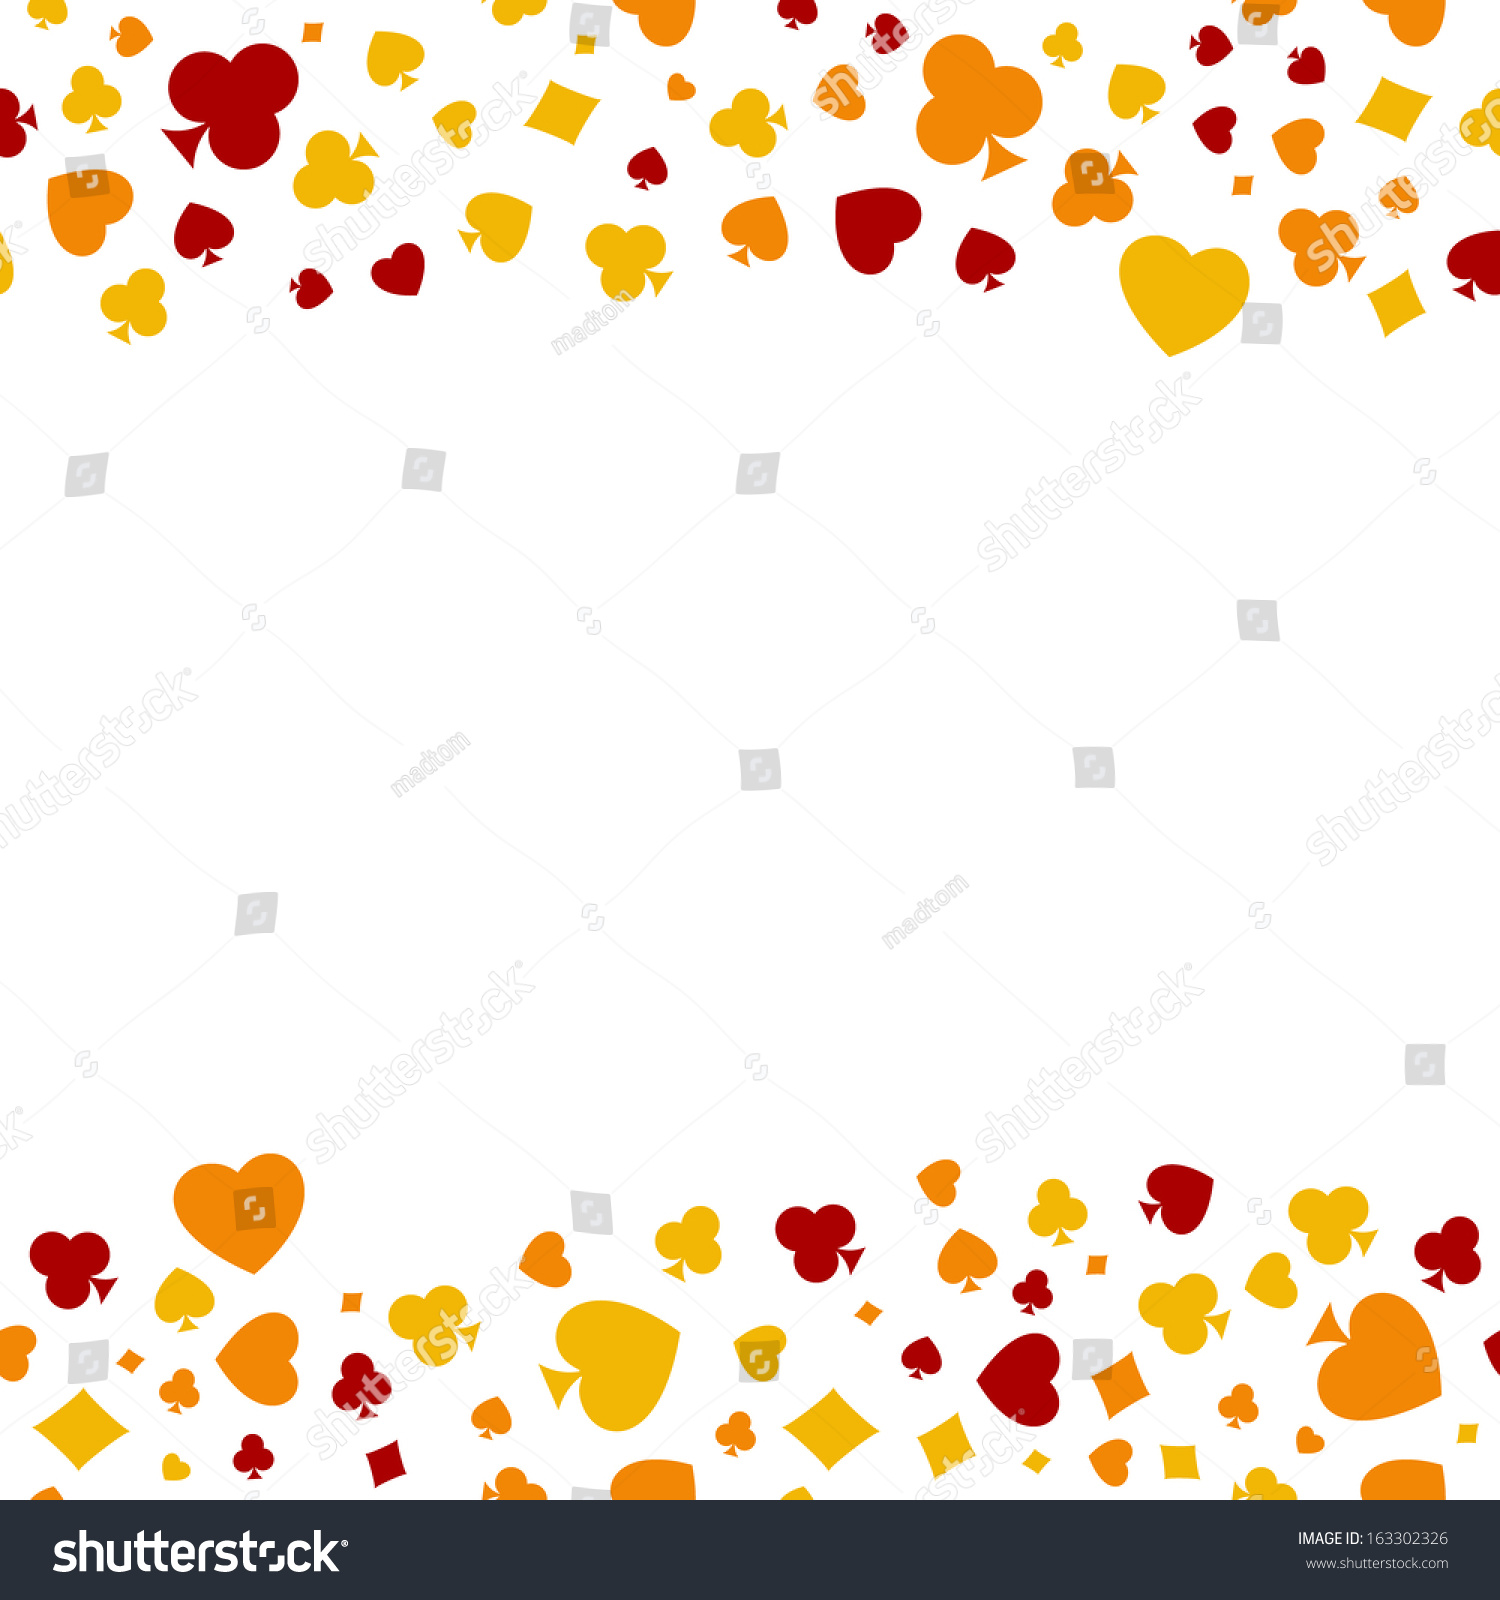 Seamless boarder made out casino symbols stock vector 163302326 the seamless boarder made out of casino symbols heart diamond spade and clubs biocorpaavc Gallery